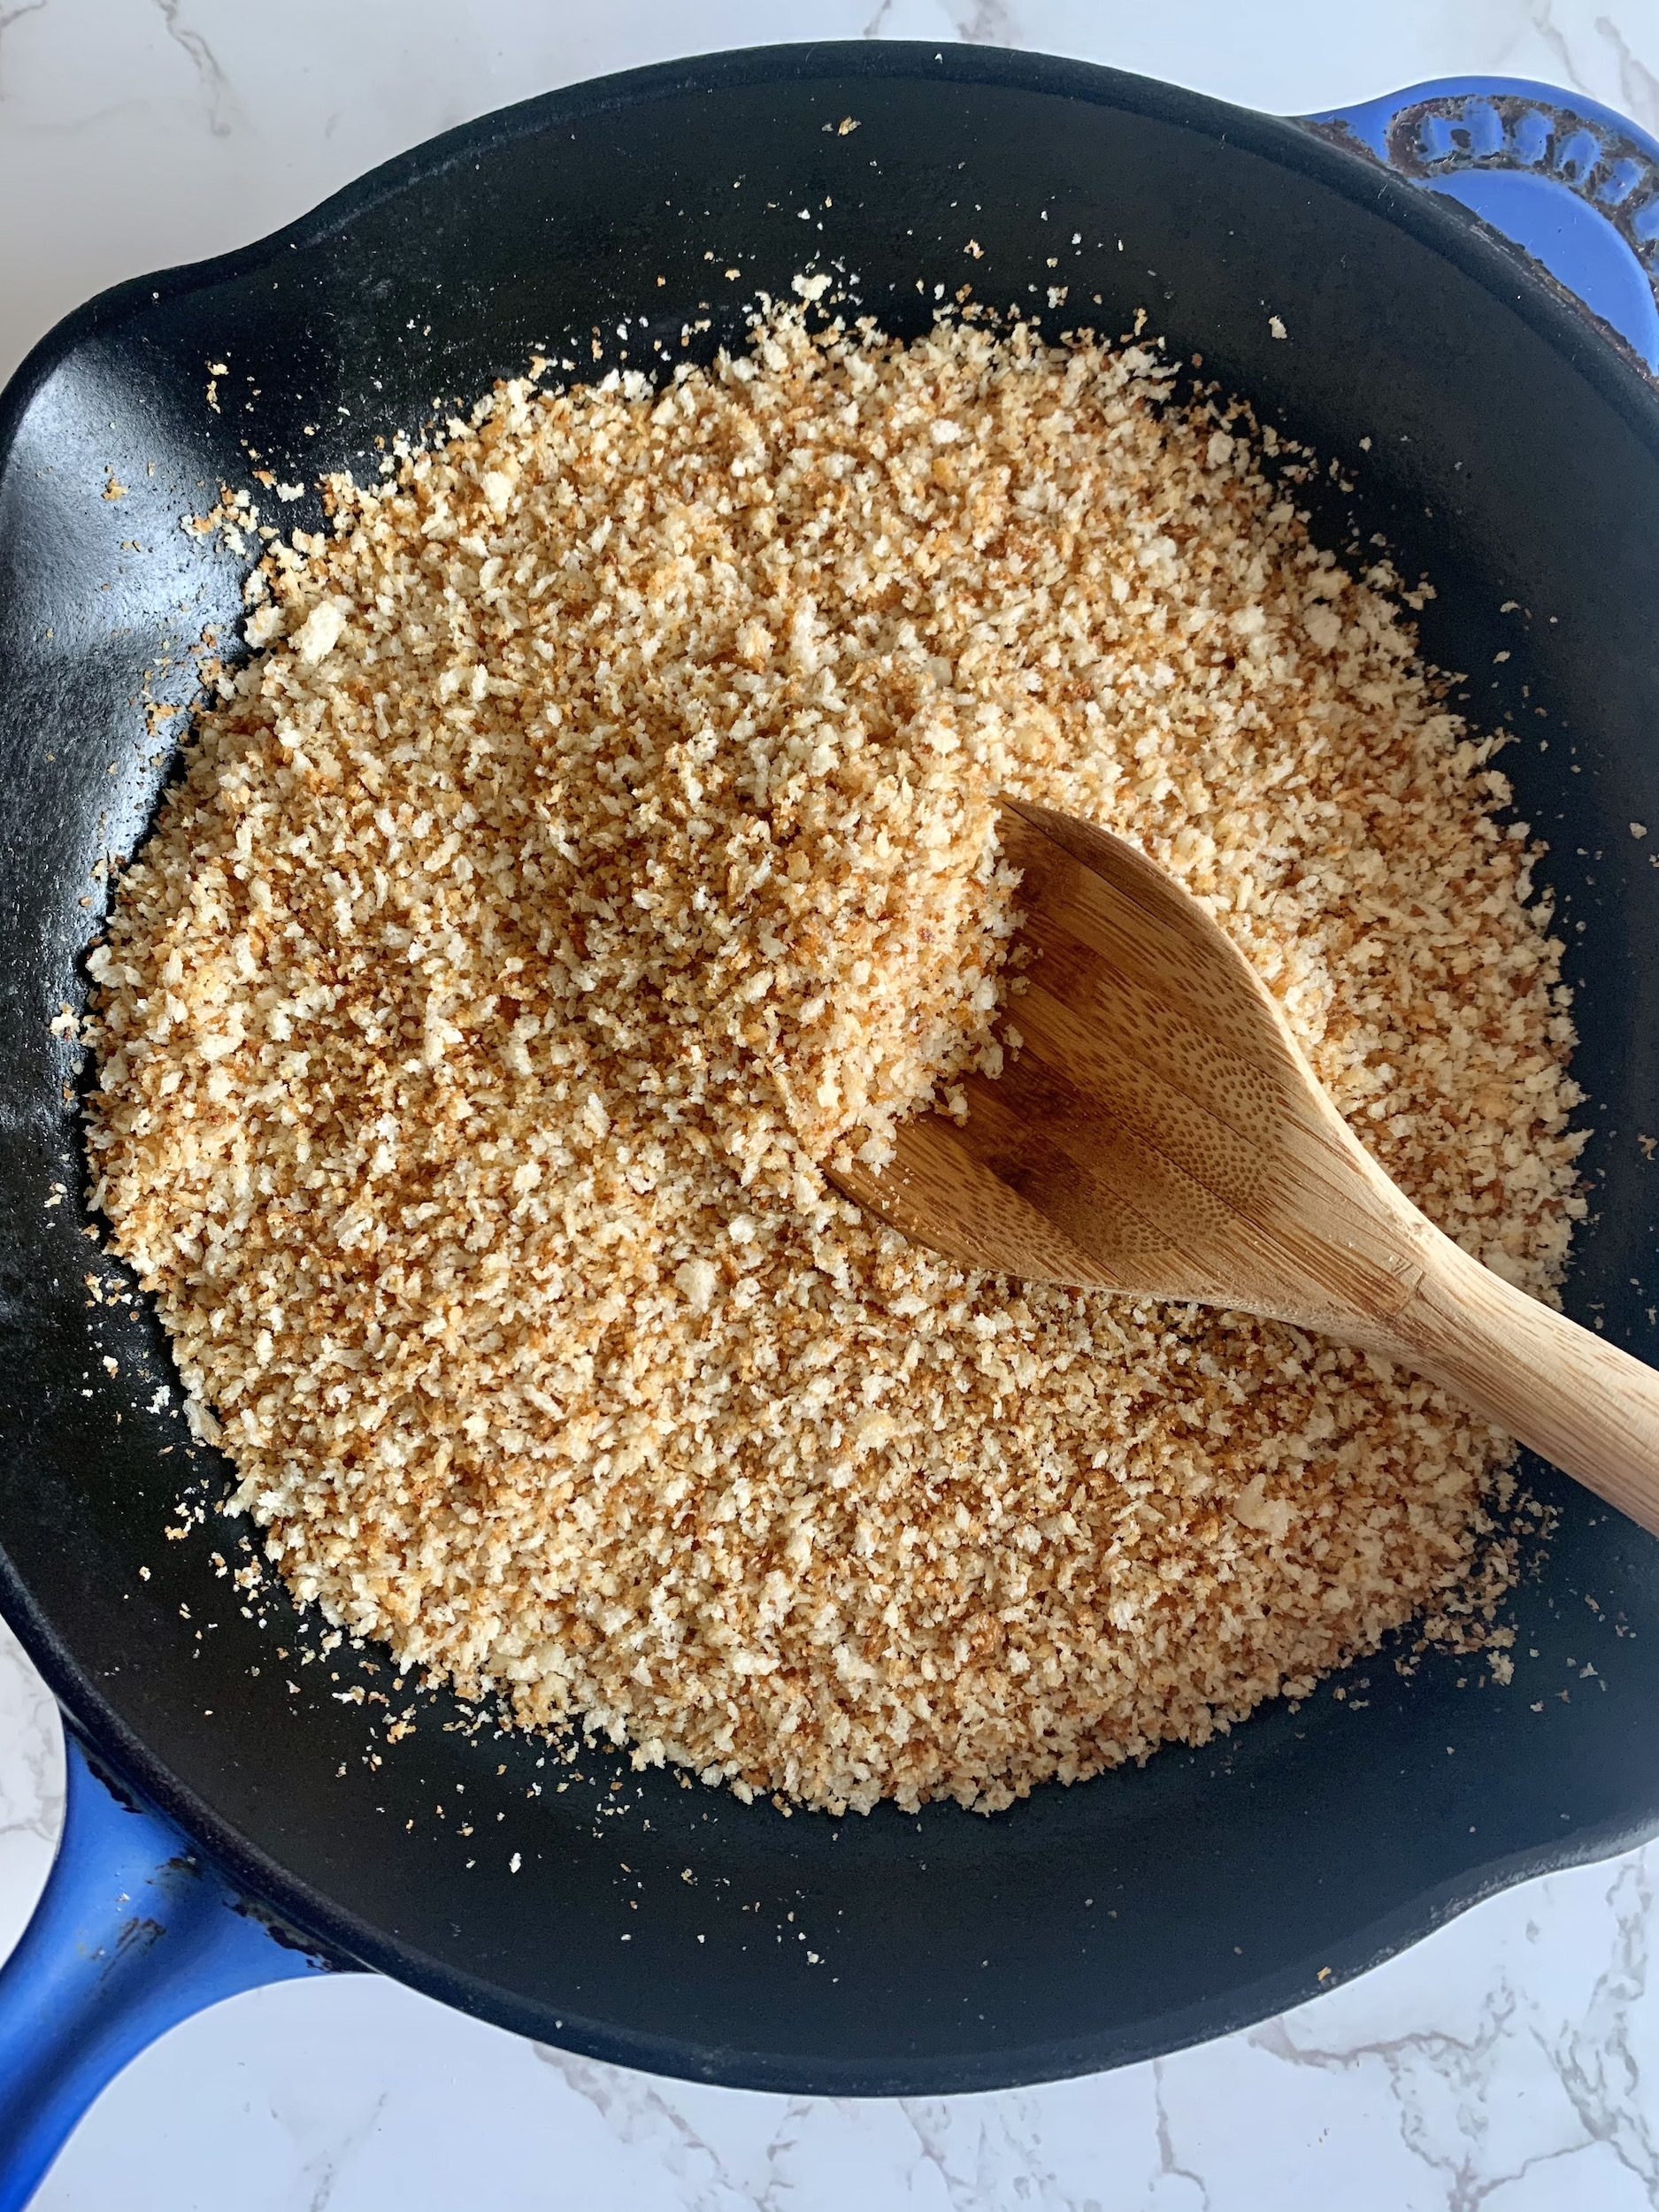 blue cast iron skillet with toasted panko breadcrumbs and a wooden spoon